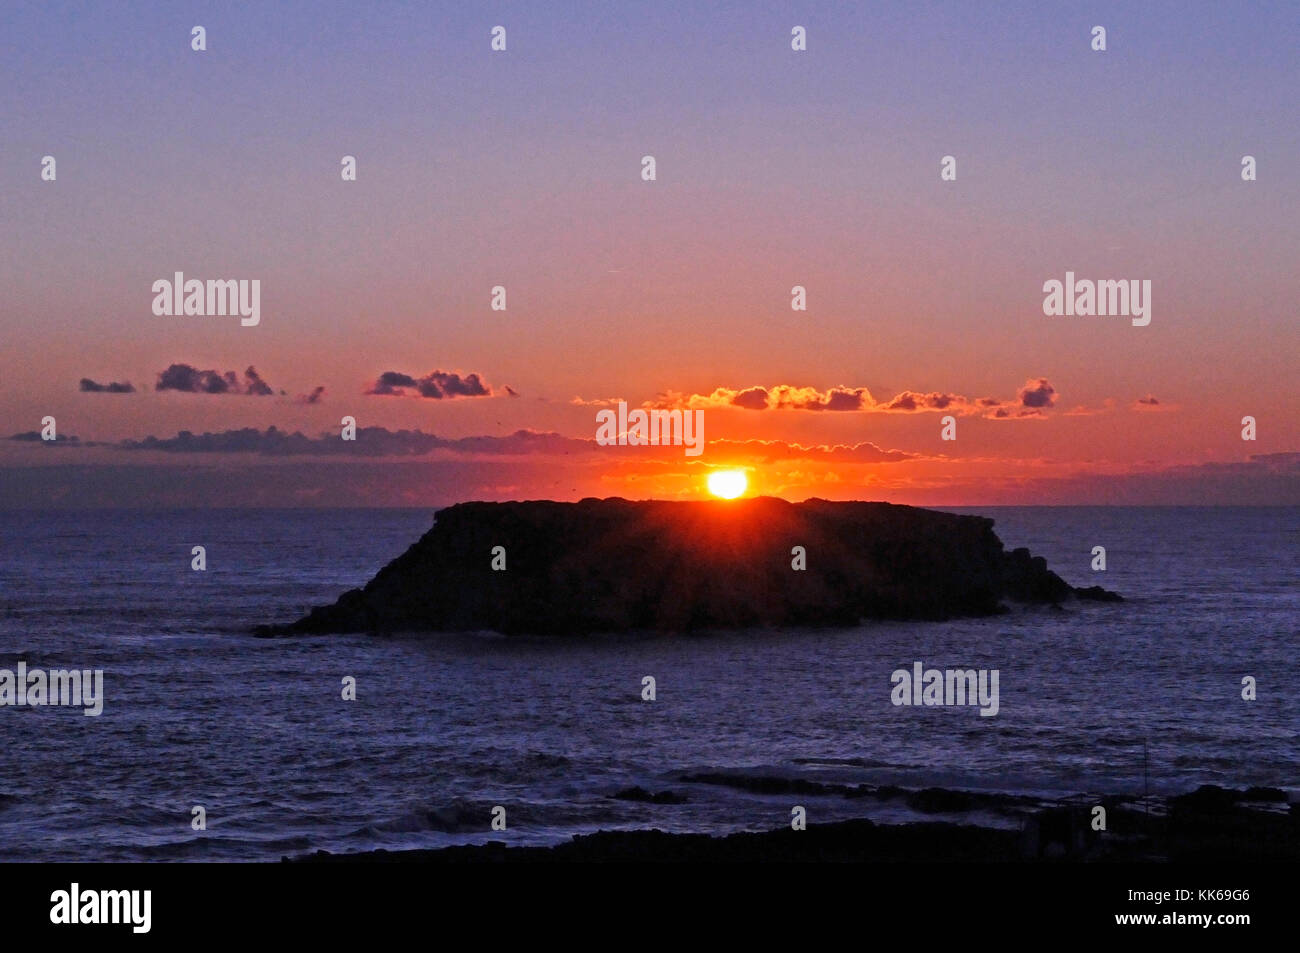 Sunset View to the offshore island at Agios Georgios  Cape Drepano Paphos Cyprus - Stock Image